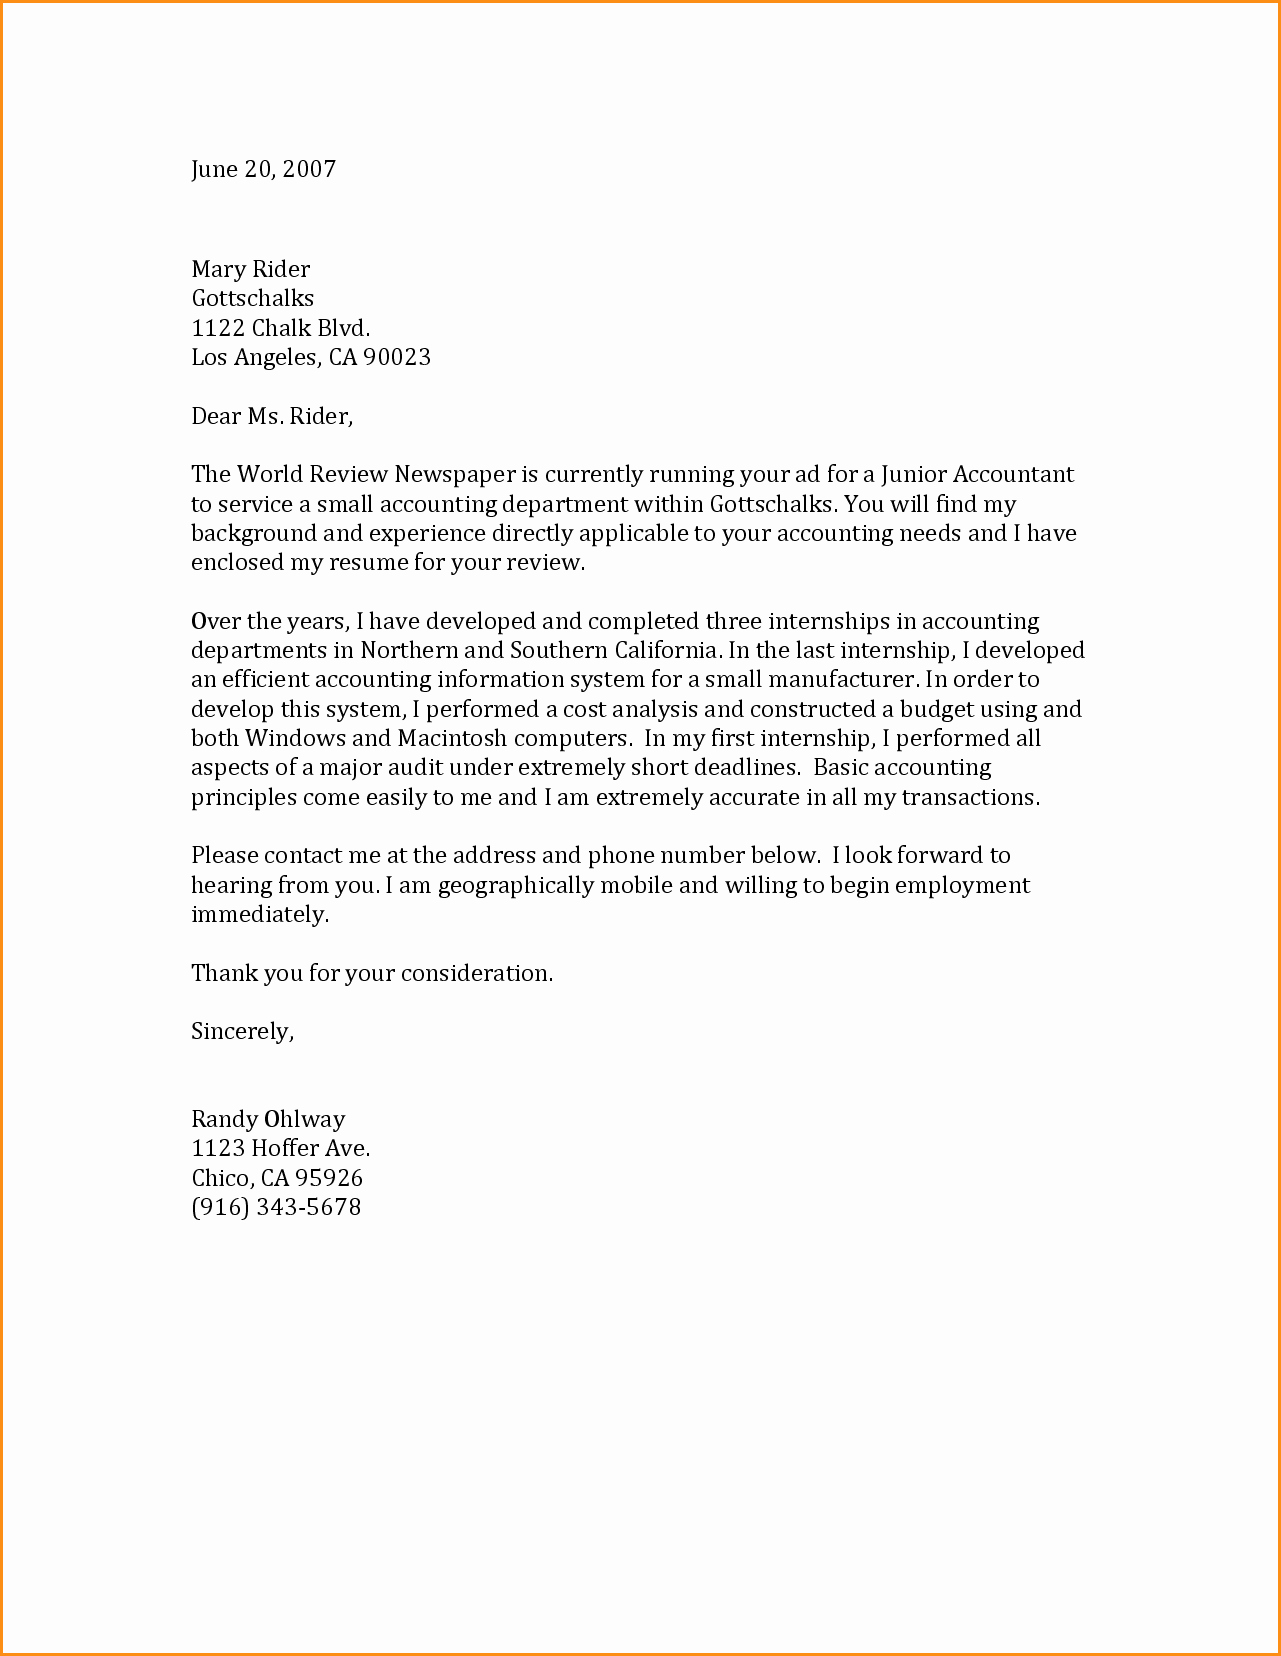 Resume and Cover Letter Template New 6 General Cover Letter Samples